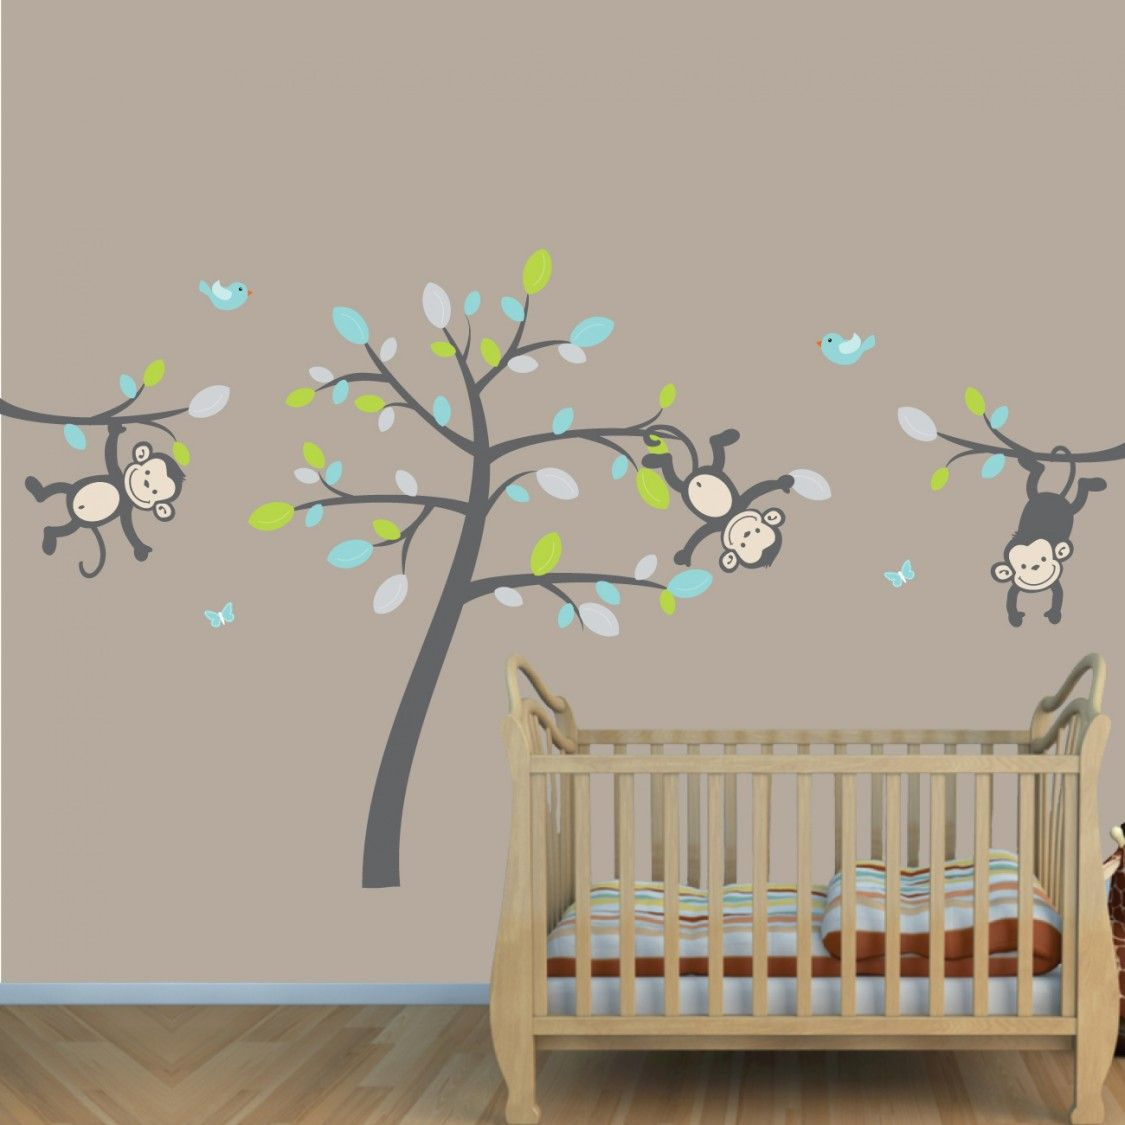 Teal U0026 Gray Jungle Nursery Wall Decals With Vine Wall Decals For Kids